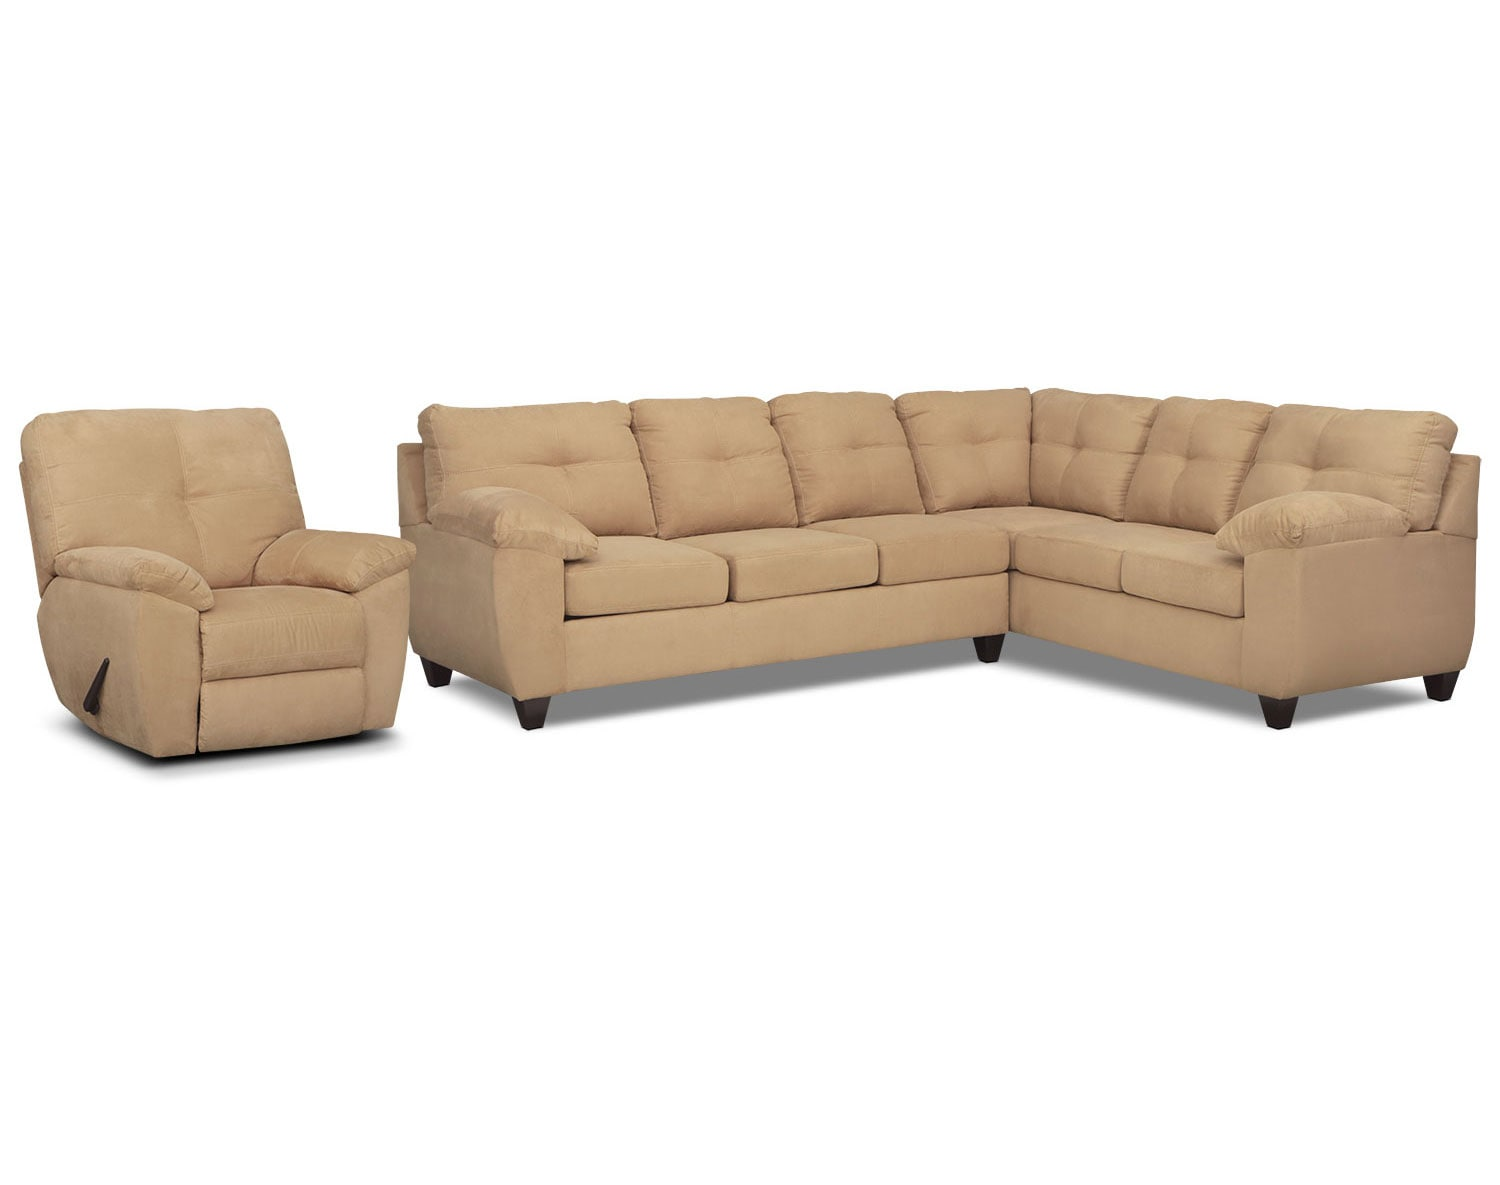 The Rialto Sectional Collection - Camel